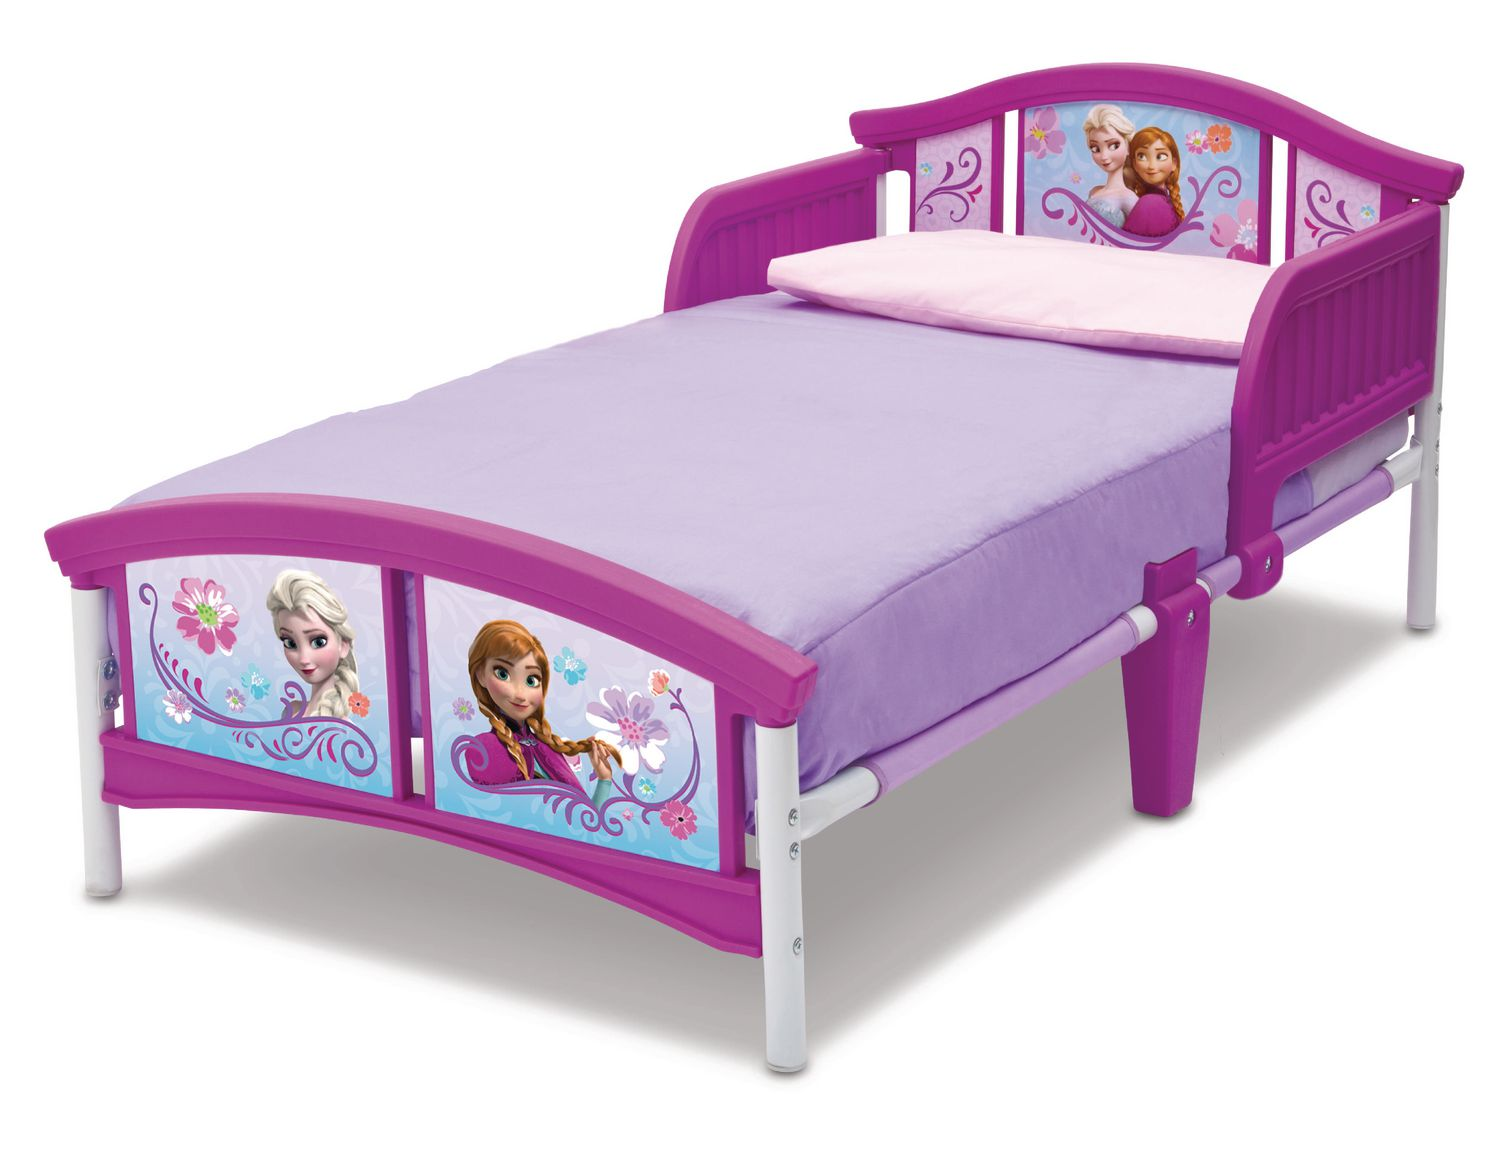 home sccessories for astounding bedroom ideas colors bed play room decor furniture with disney frozen sets girls breathtaking double on interseting